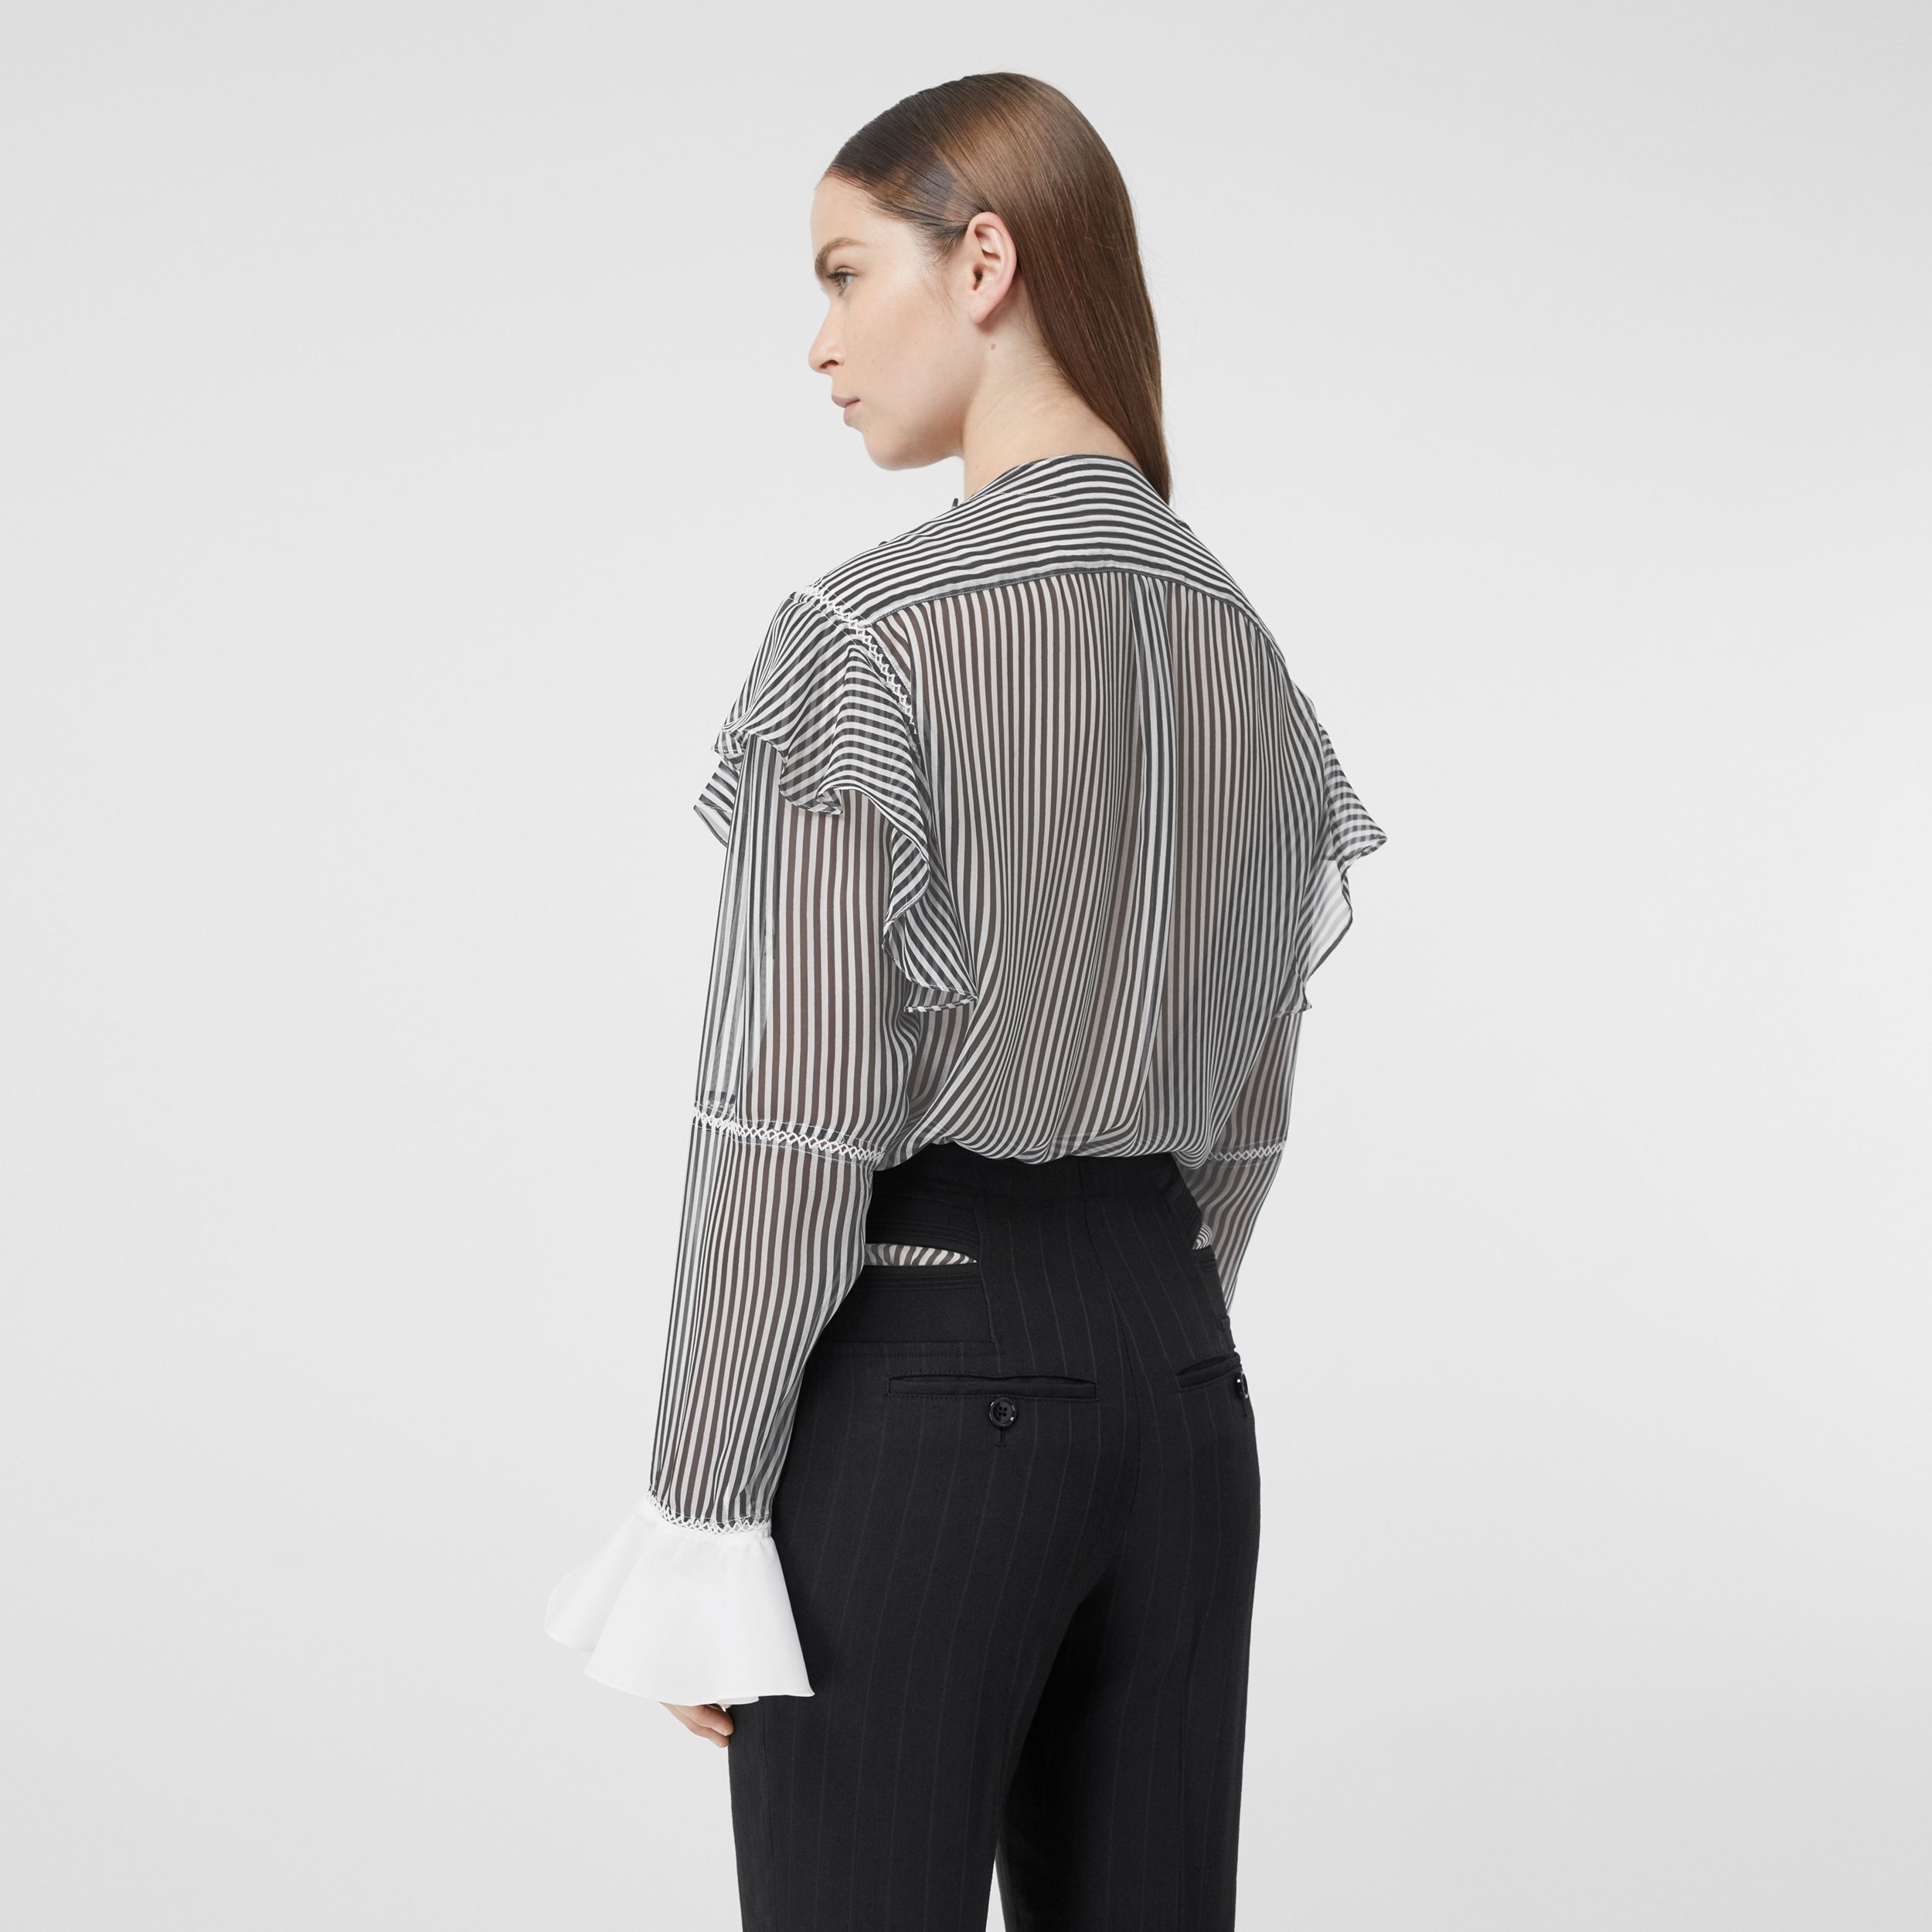 Ruffle Detail Striped Silk Chiffon Shirt in Black - Women | Burberry Australia - 3